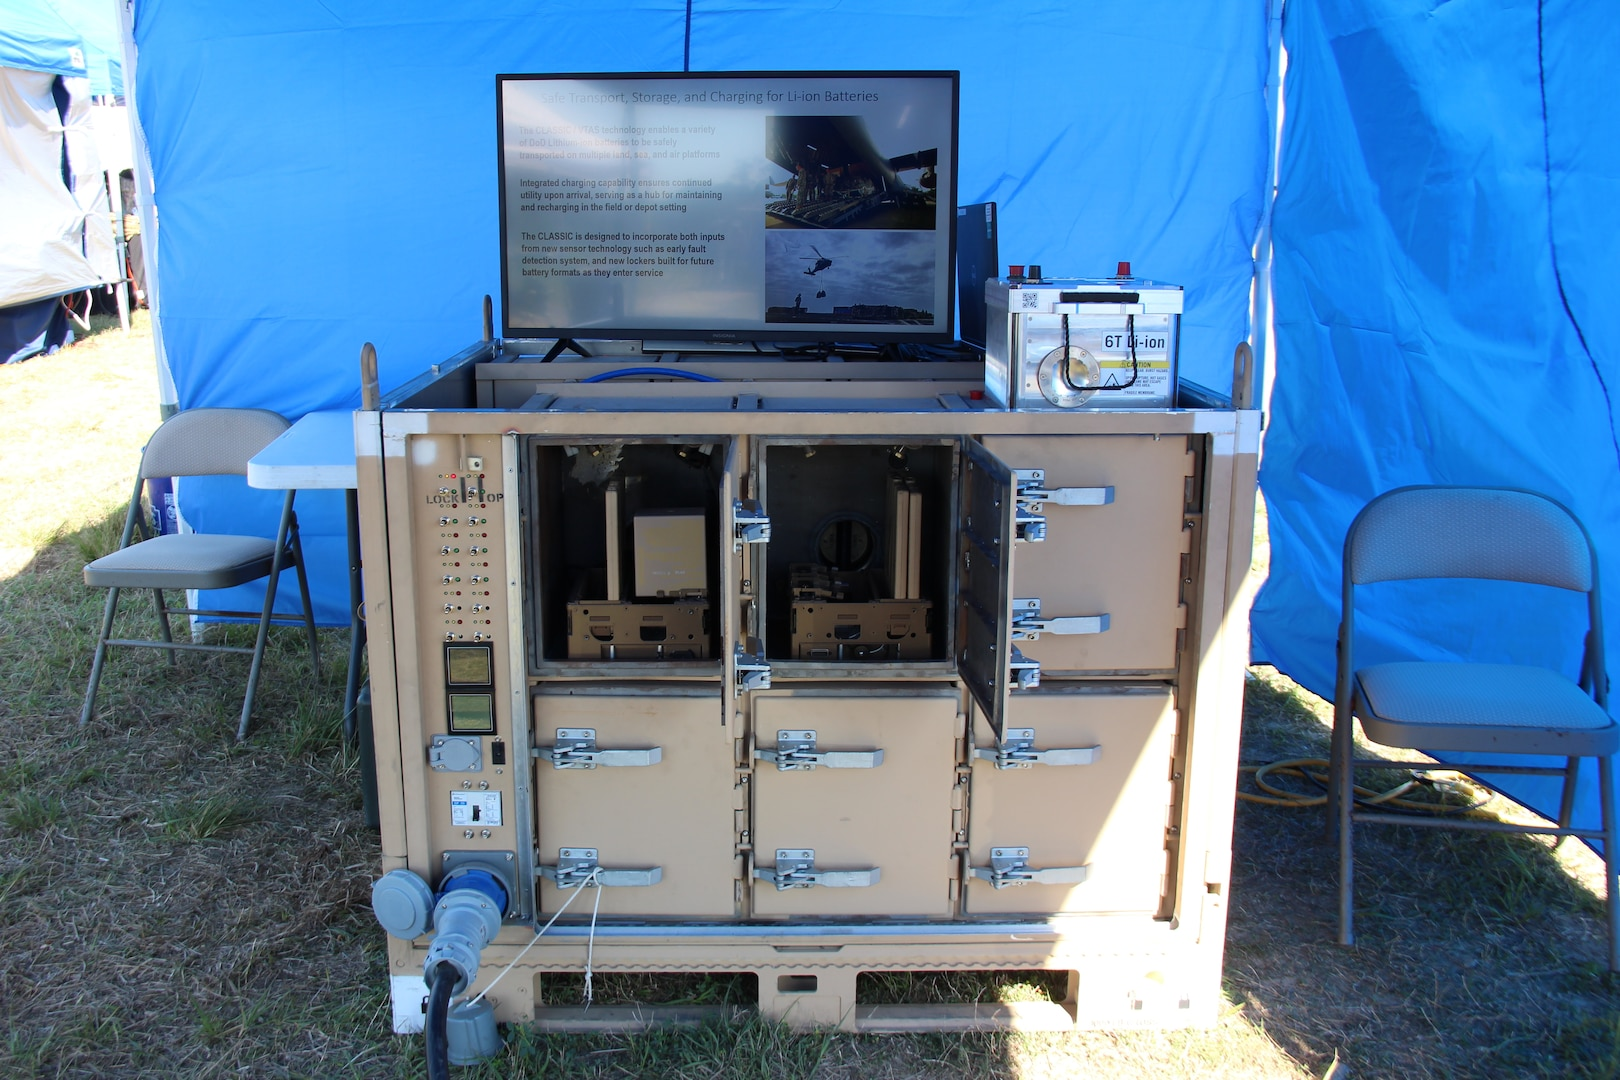 Carderock's Charging-Capable Li-ion Autonomous Safe Storage Interservice Container demonstration station at the 2021 Naval Integration in Contested Environments Advanced Naval Technology Exercise on April 12 in Camp Lejeune, N.C.